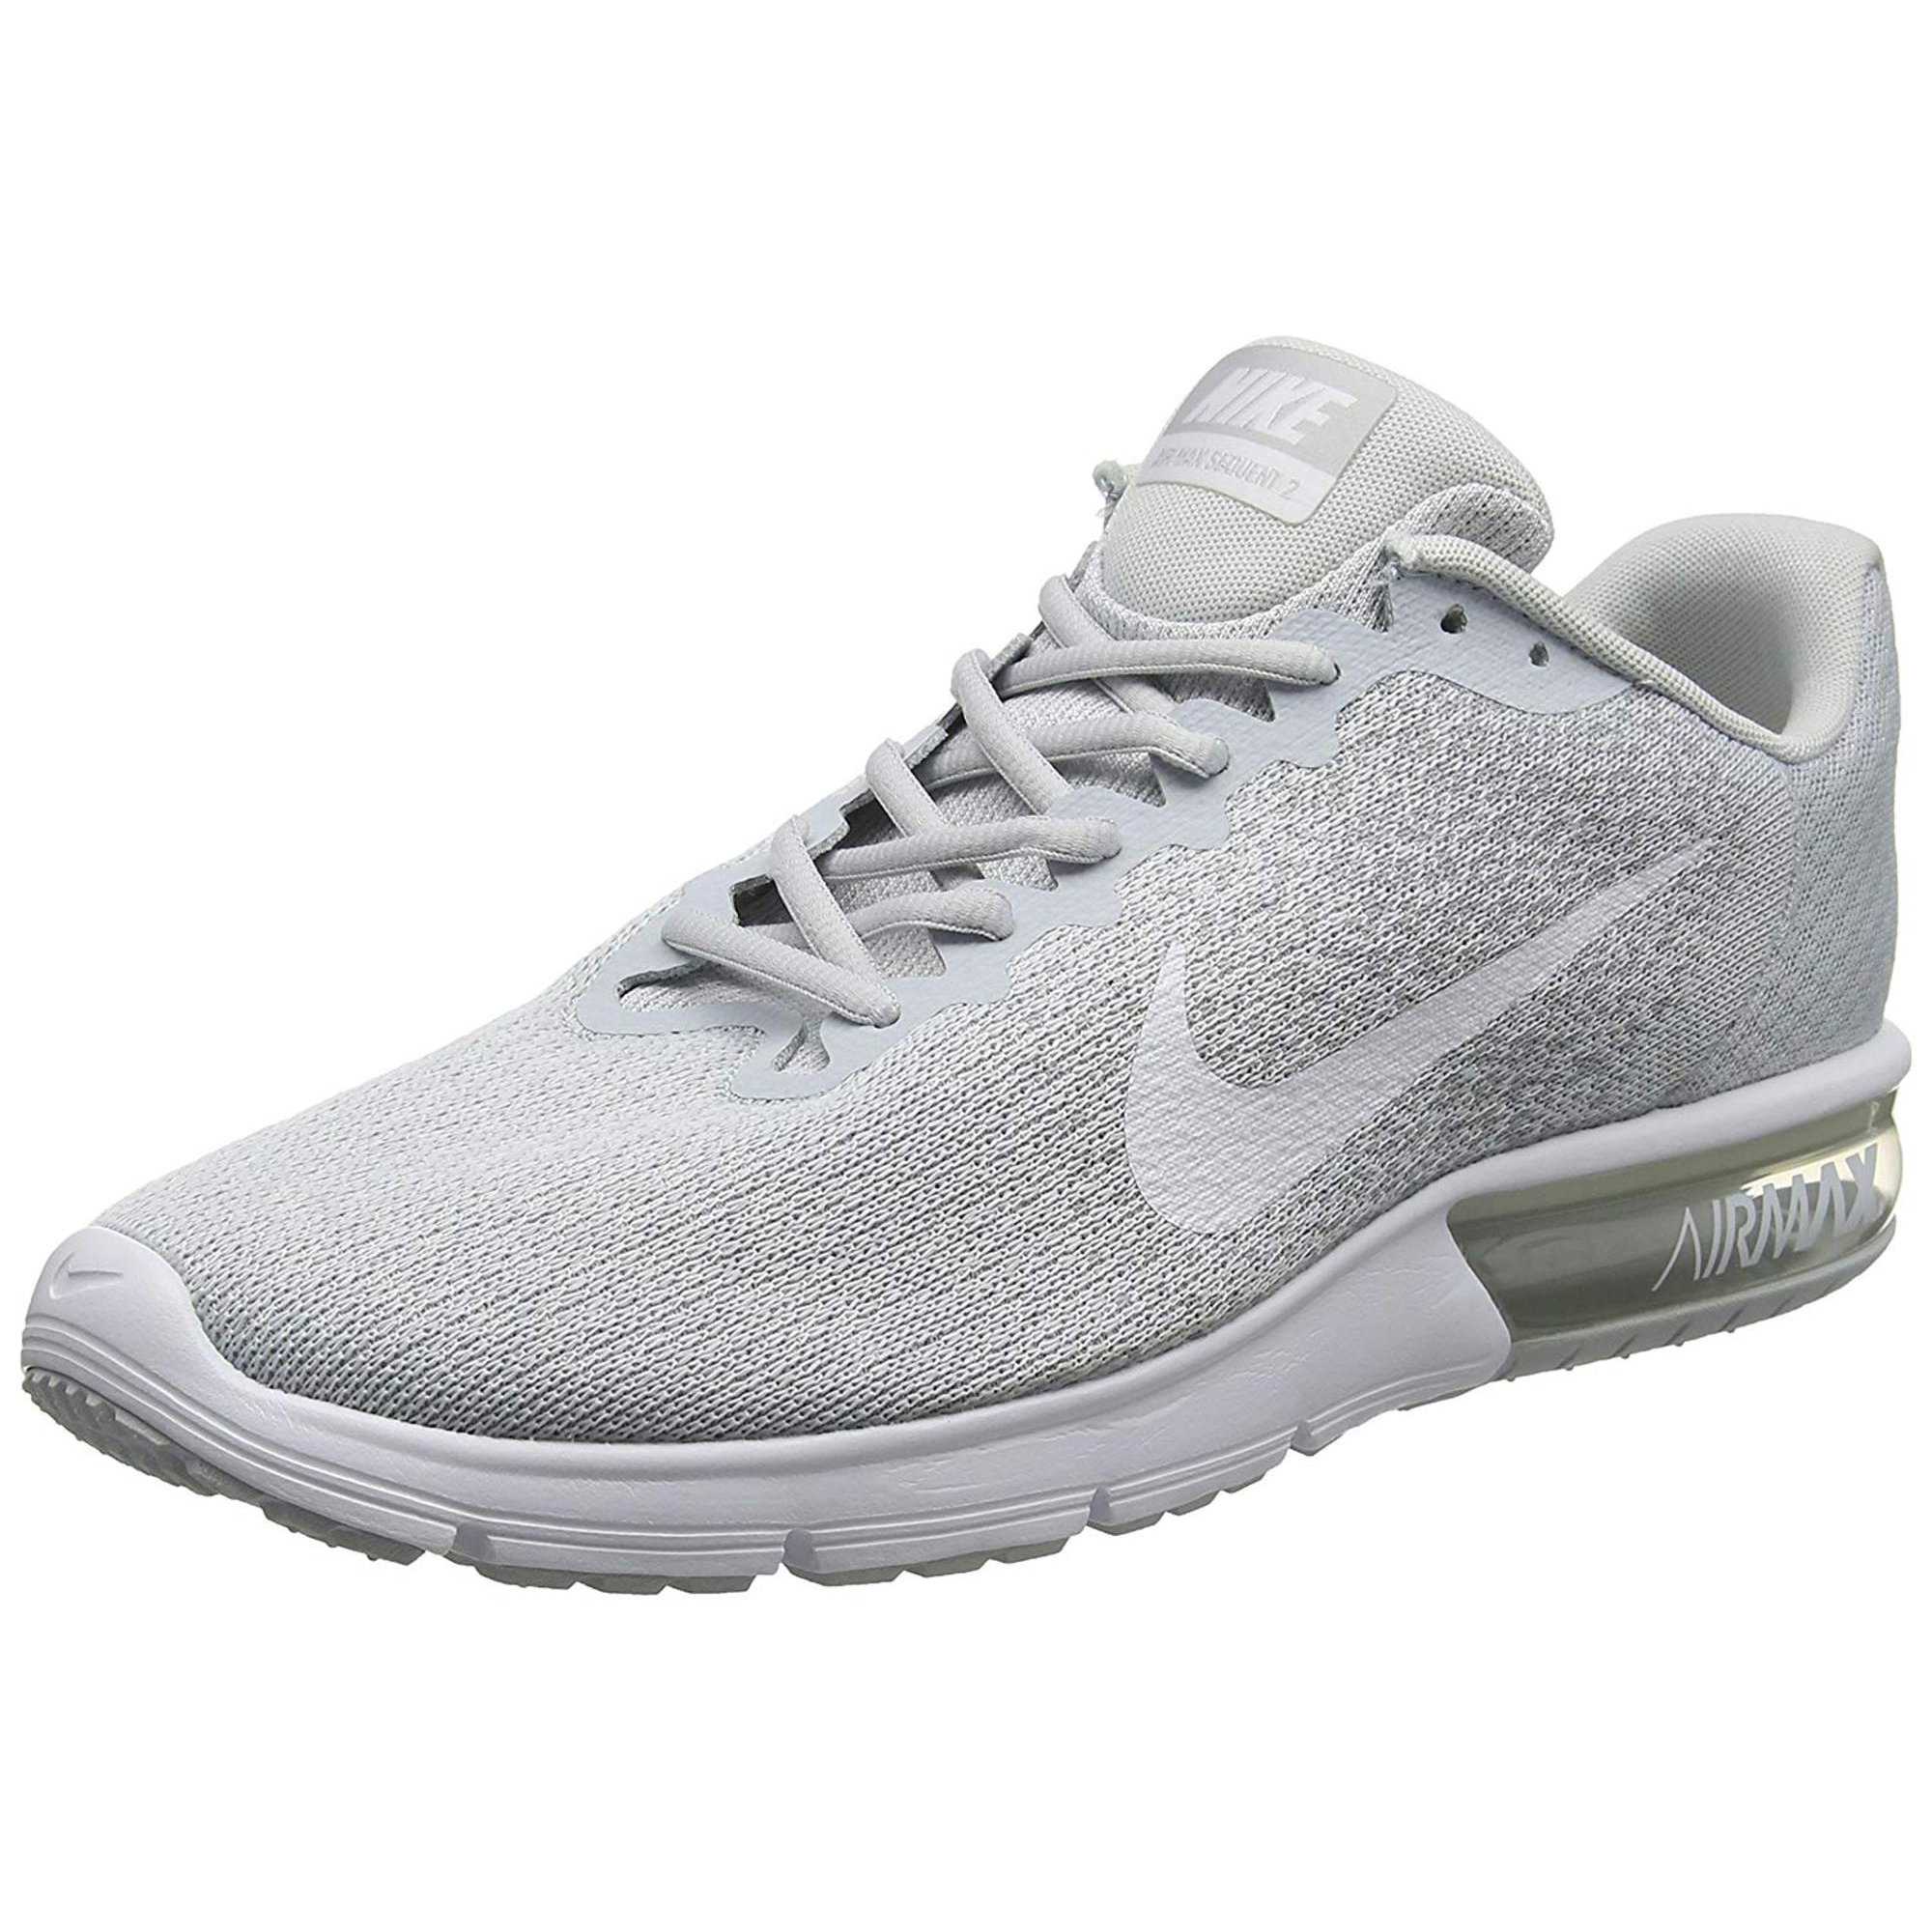 a23be62129729 Mens Nike Air Max Sequent Low Top Lace Up Trail Running Shoes ...